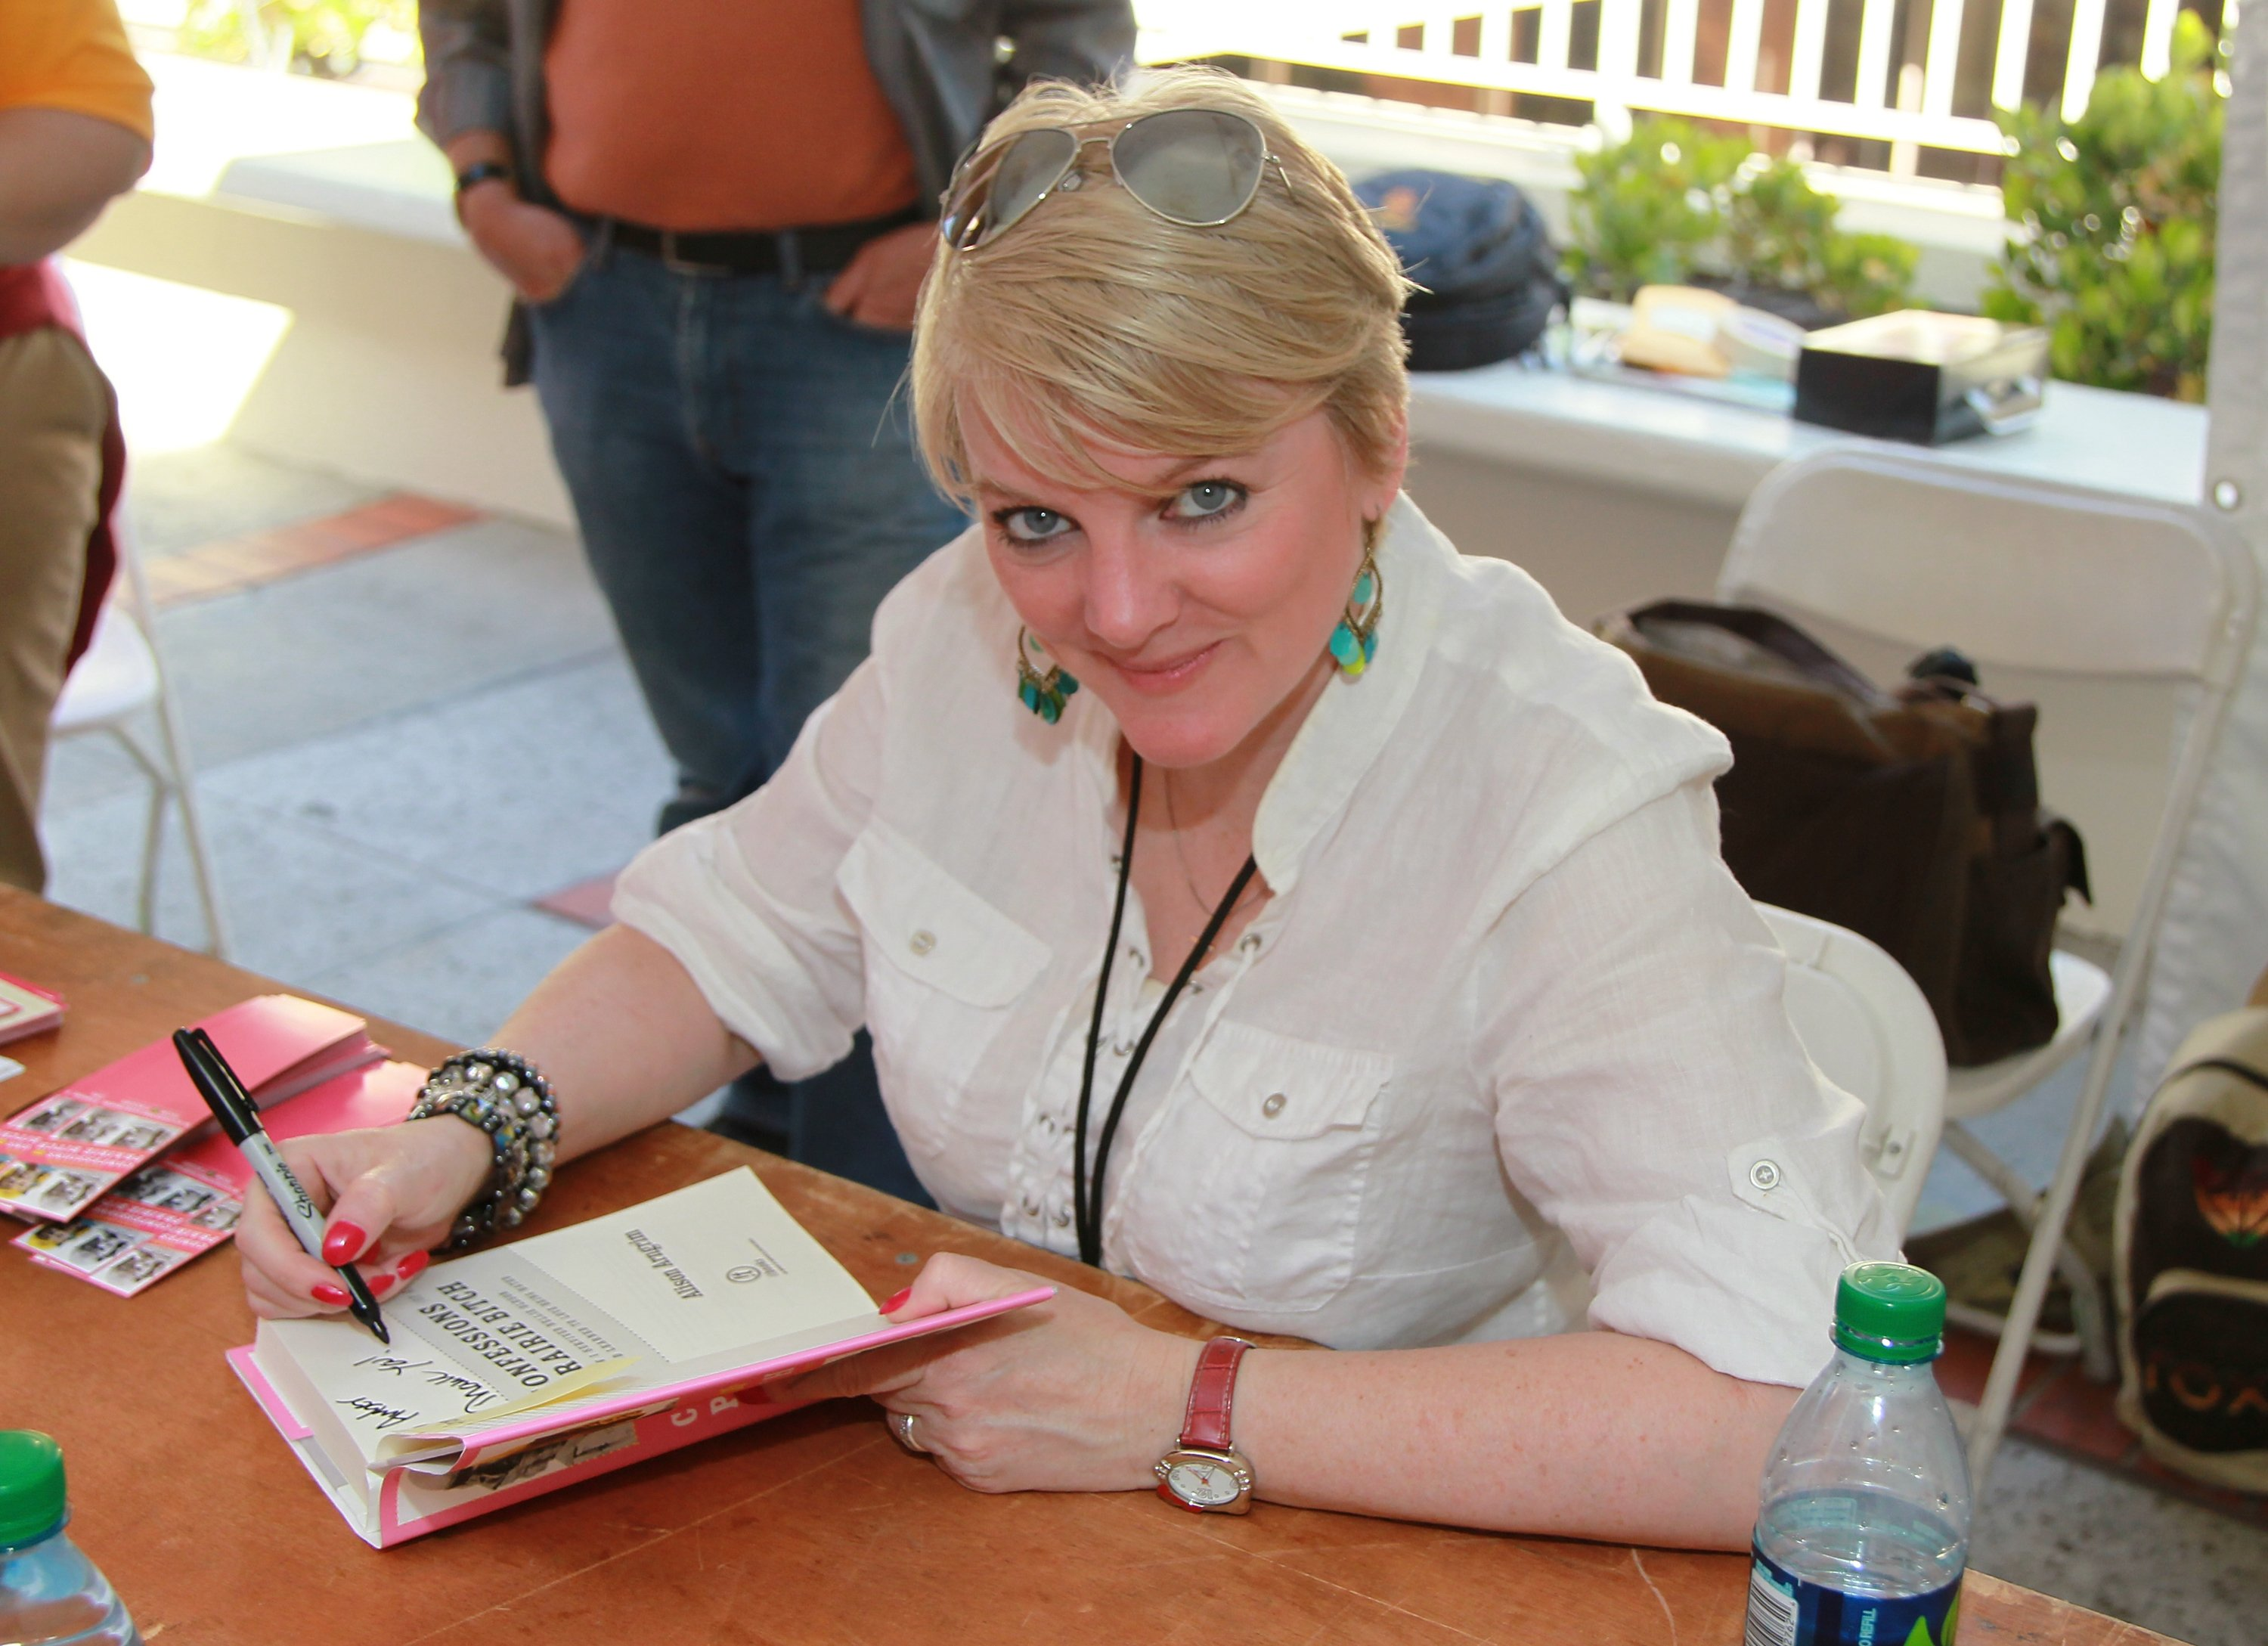 Alison Arngrim at the 16th Annual Los Angeles Times Festival of Books in Los Angeles, California   Photo: Getty Images